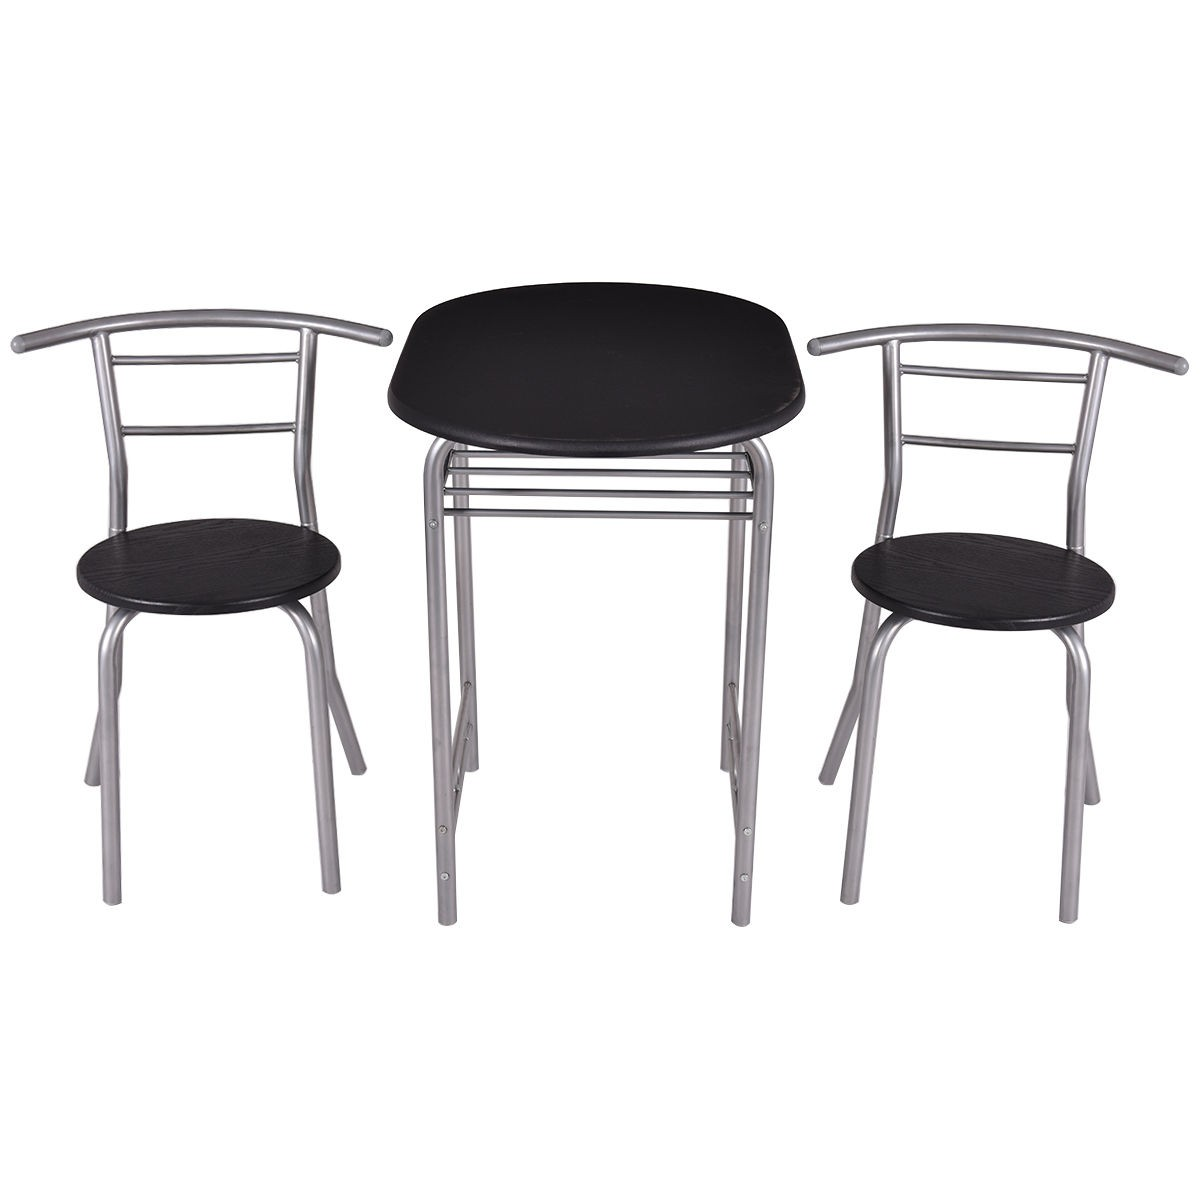 2 Chairs 3 Bistro Dining Set Table and Kitchen Furniture